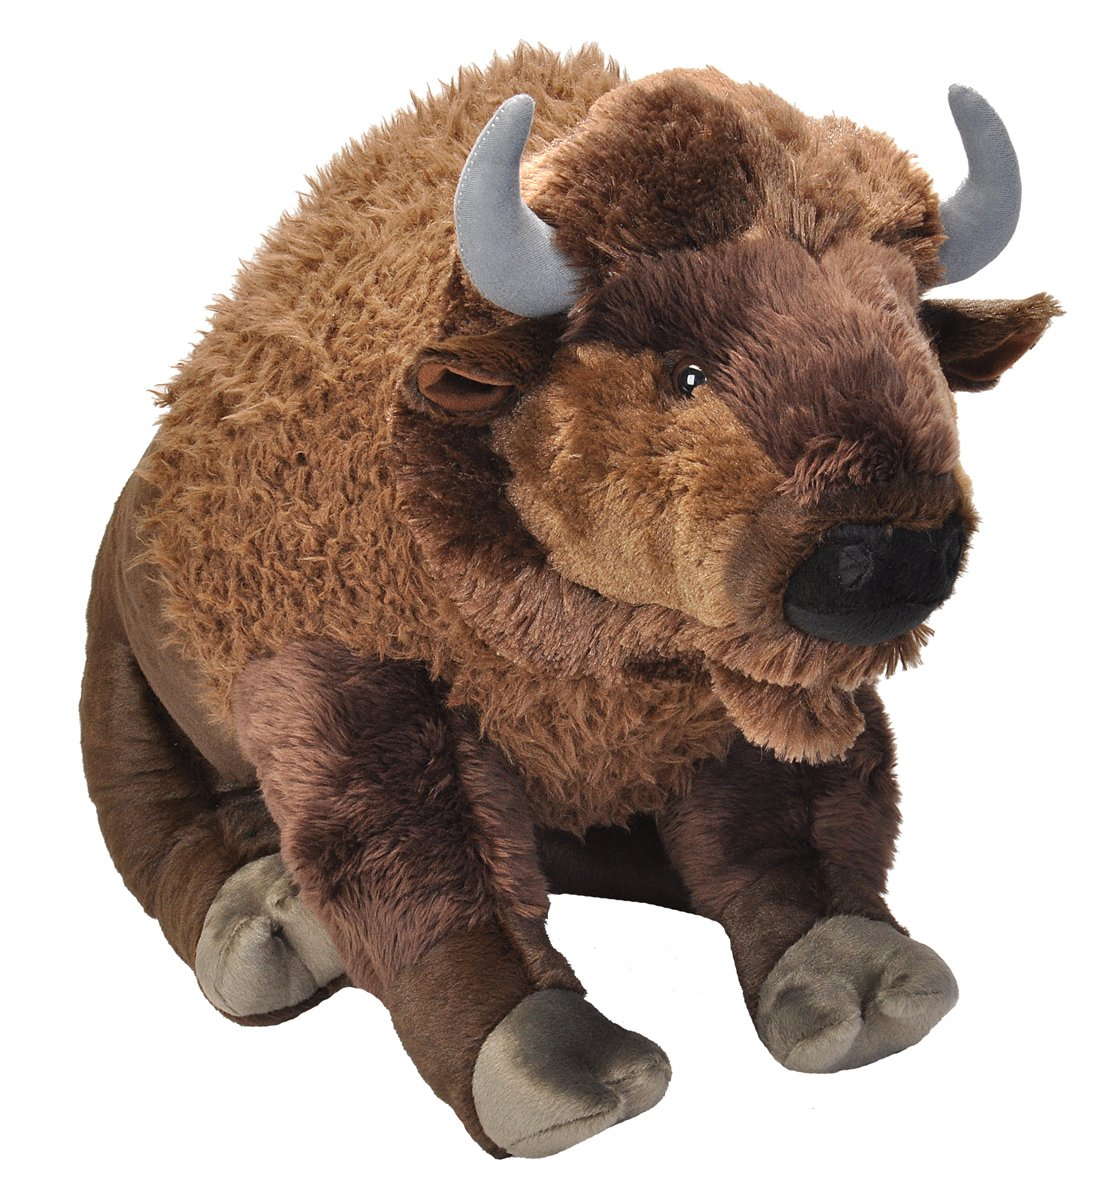 Wild Republic Jumbo Bison Plush, Giant Stuffed Animal, Plush Toy, 30'' by Wild Republic